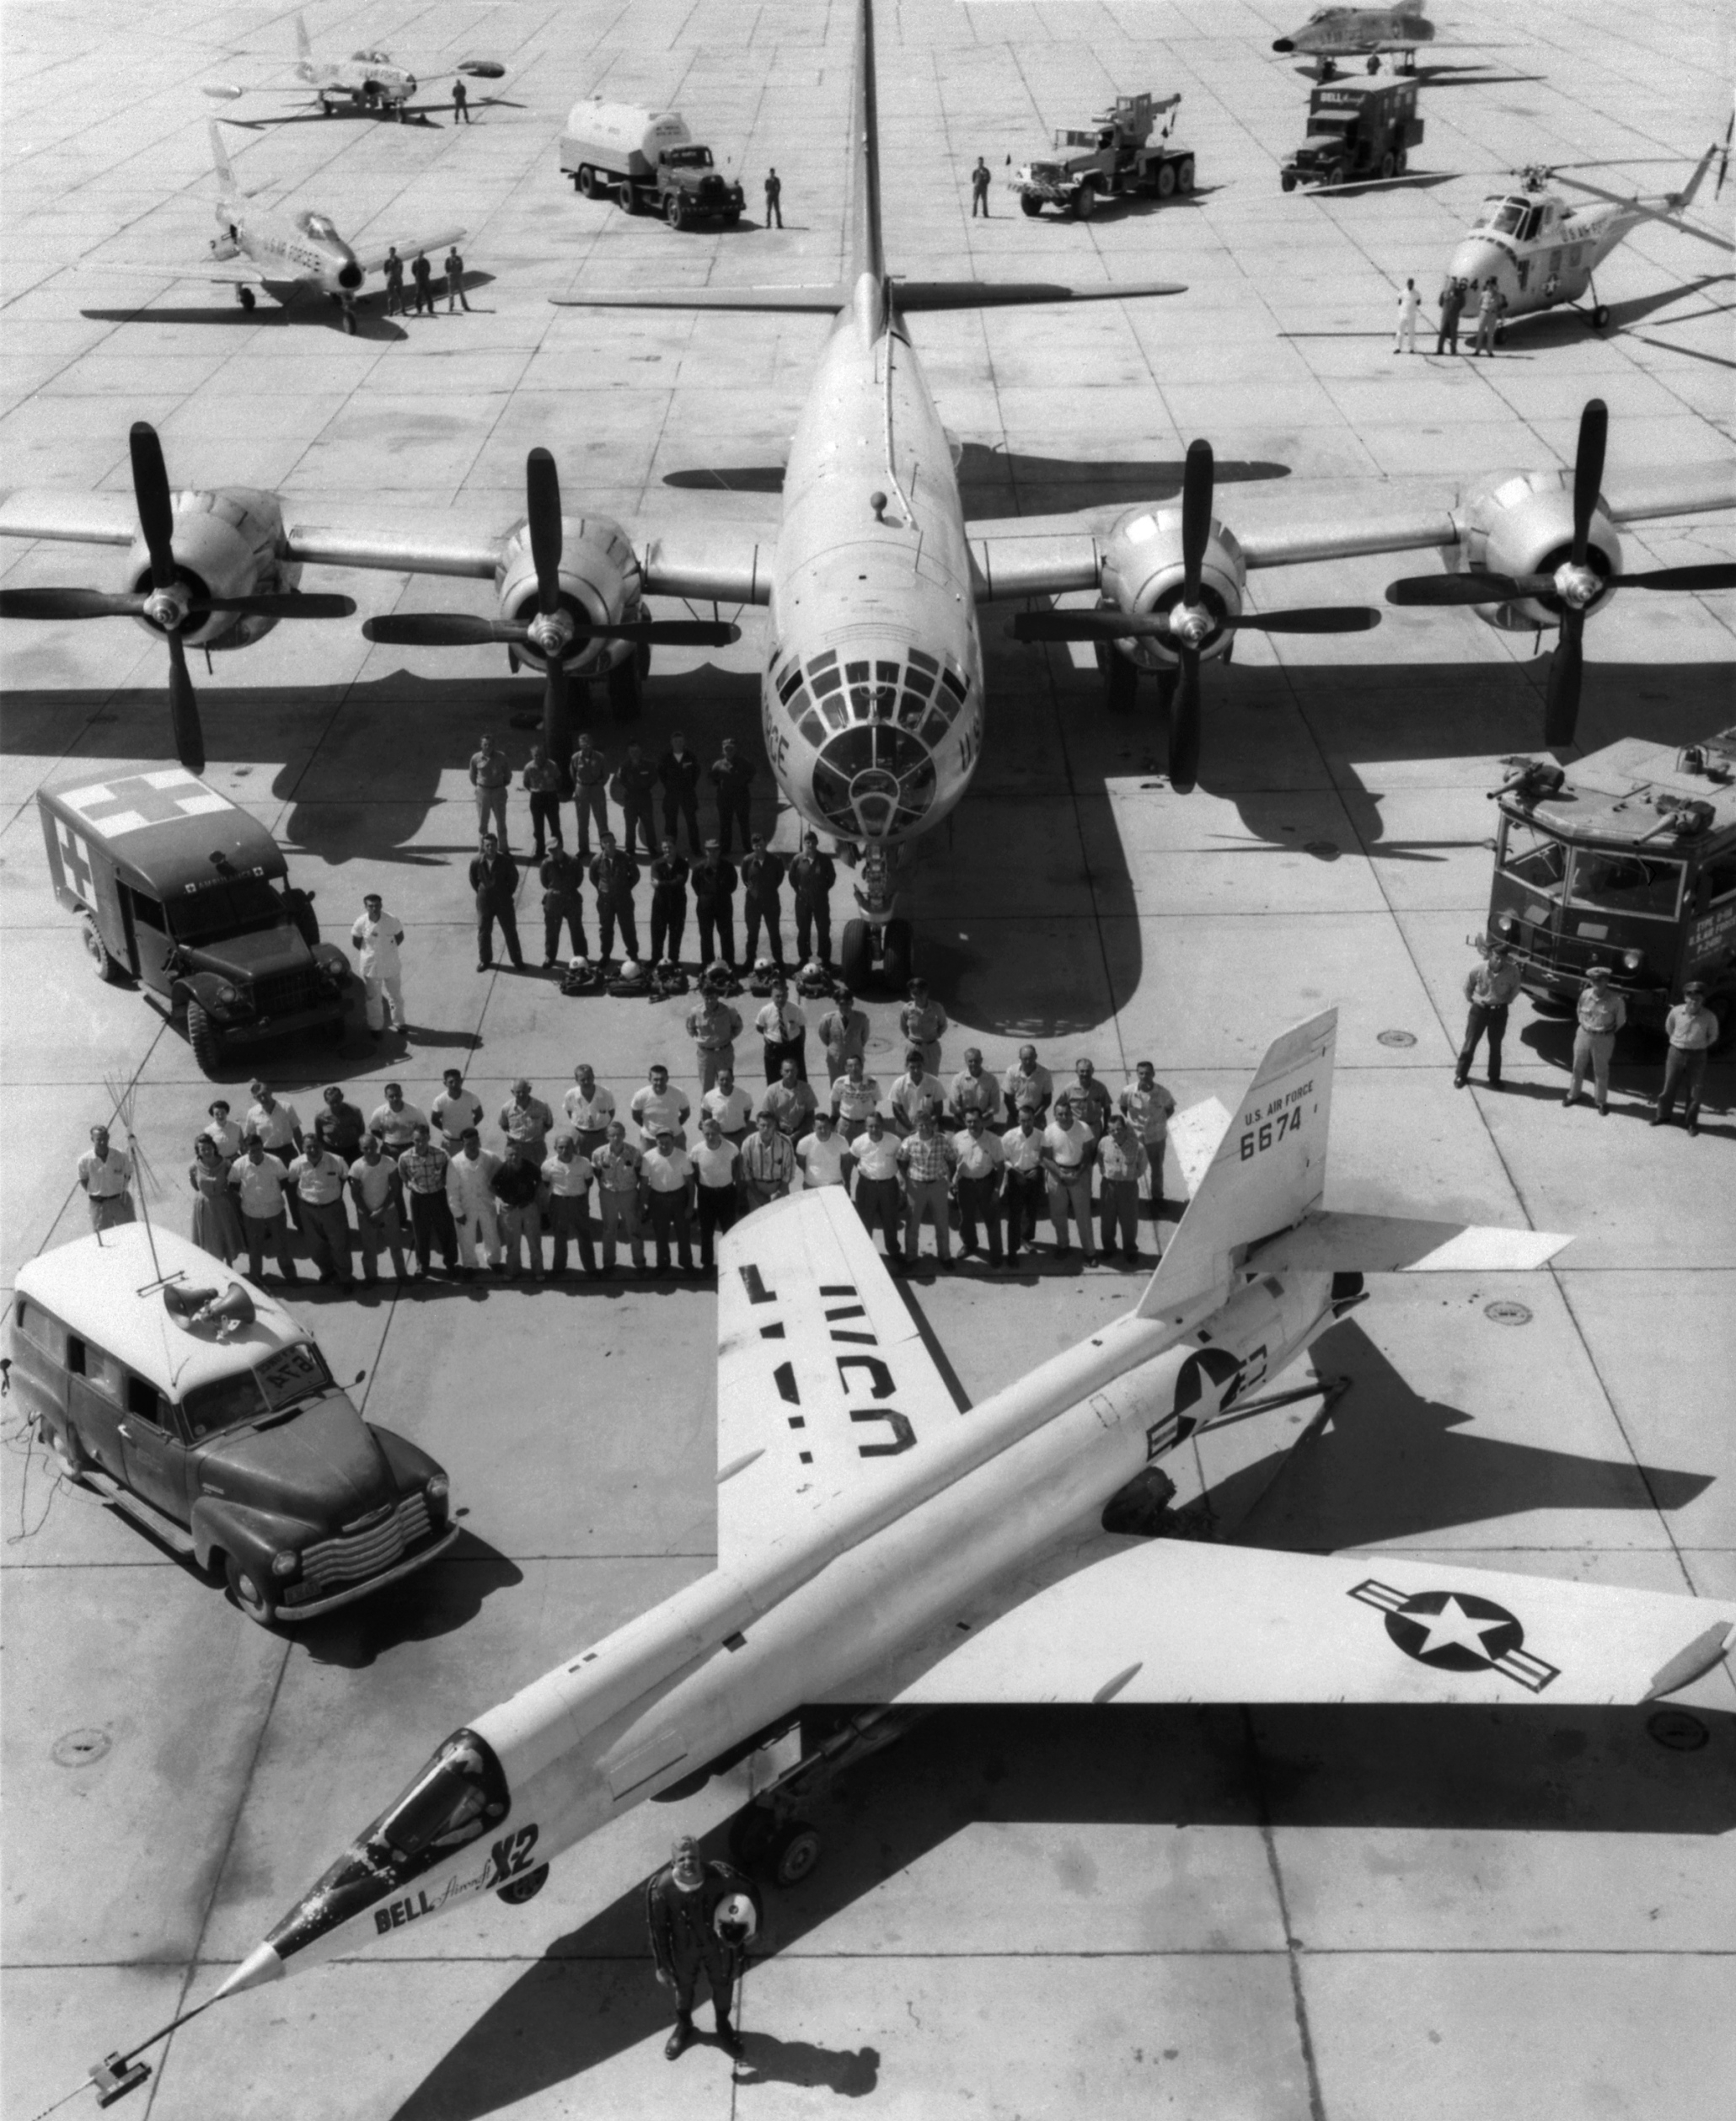 X-2_on_ramp_with_B-50_mothership_and_support_crew.jpg